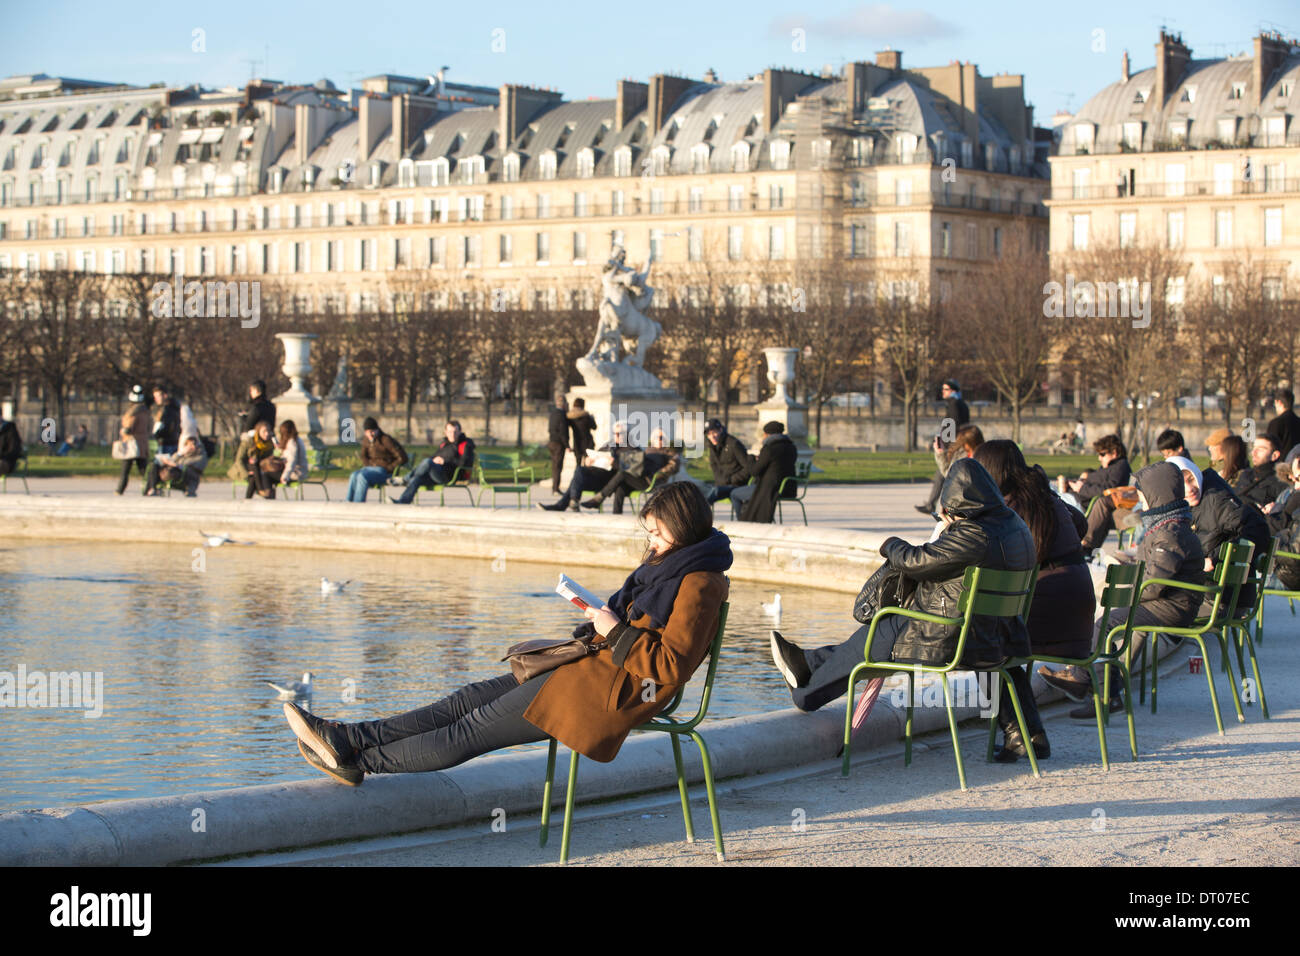 People enjoying the sun on a winters day at Jardin des Tuileries, Tuileries Gardens, Paris, France Stock Photo